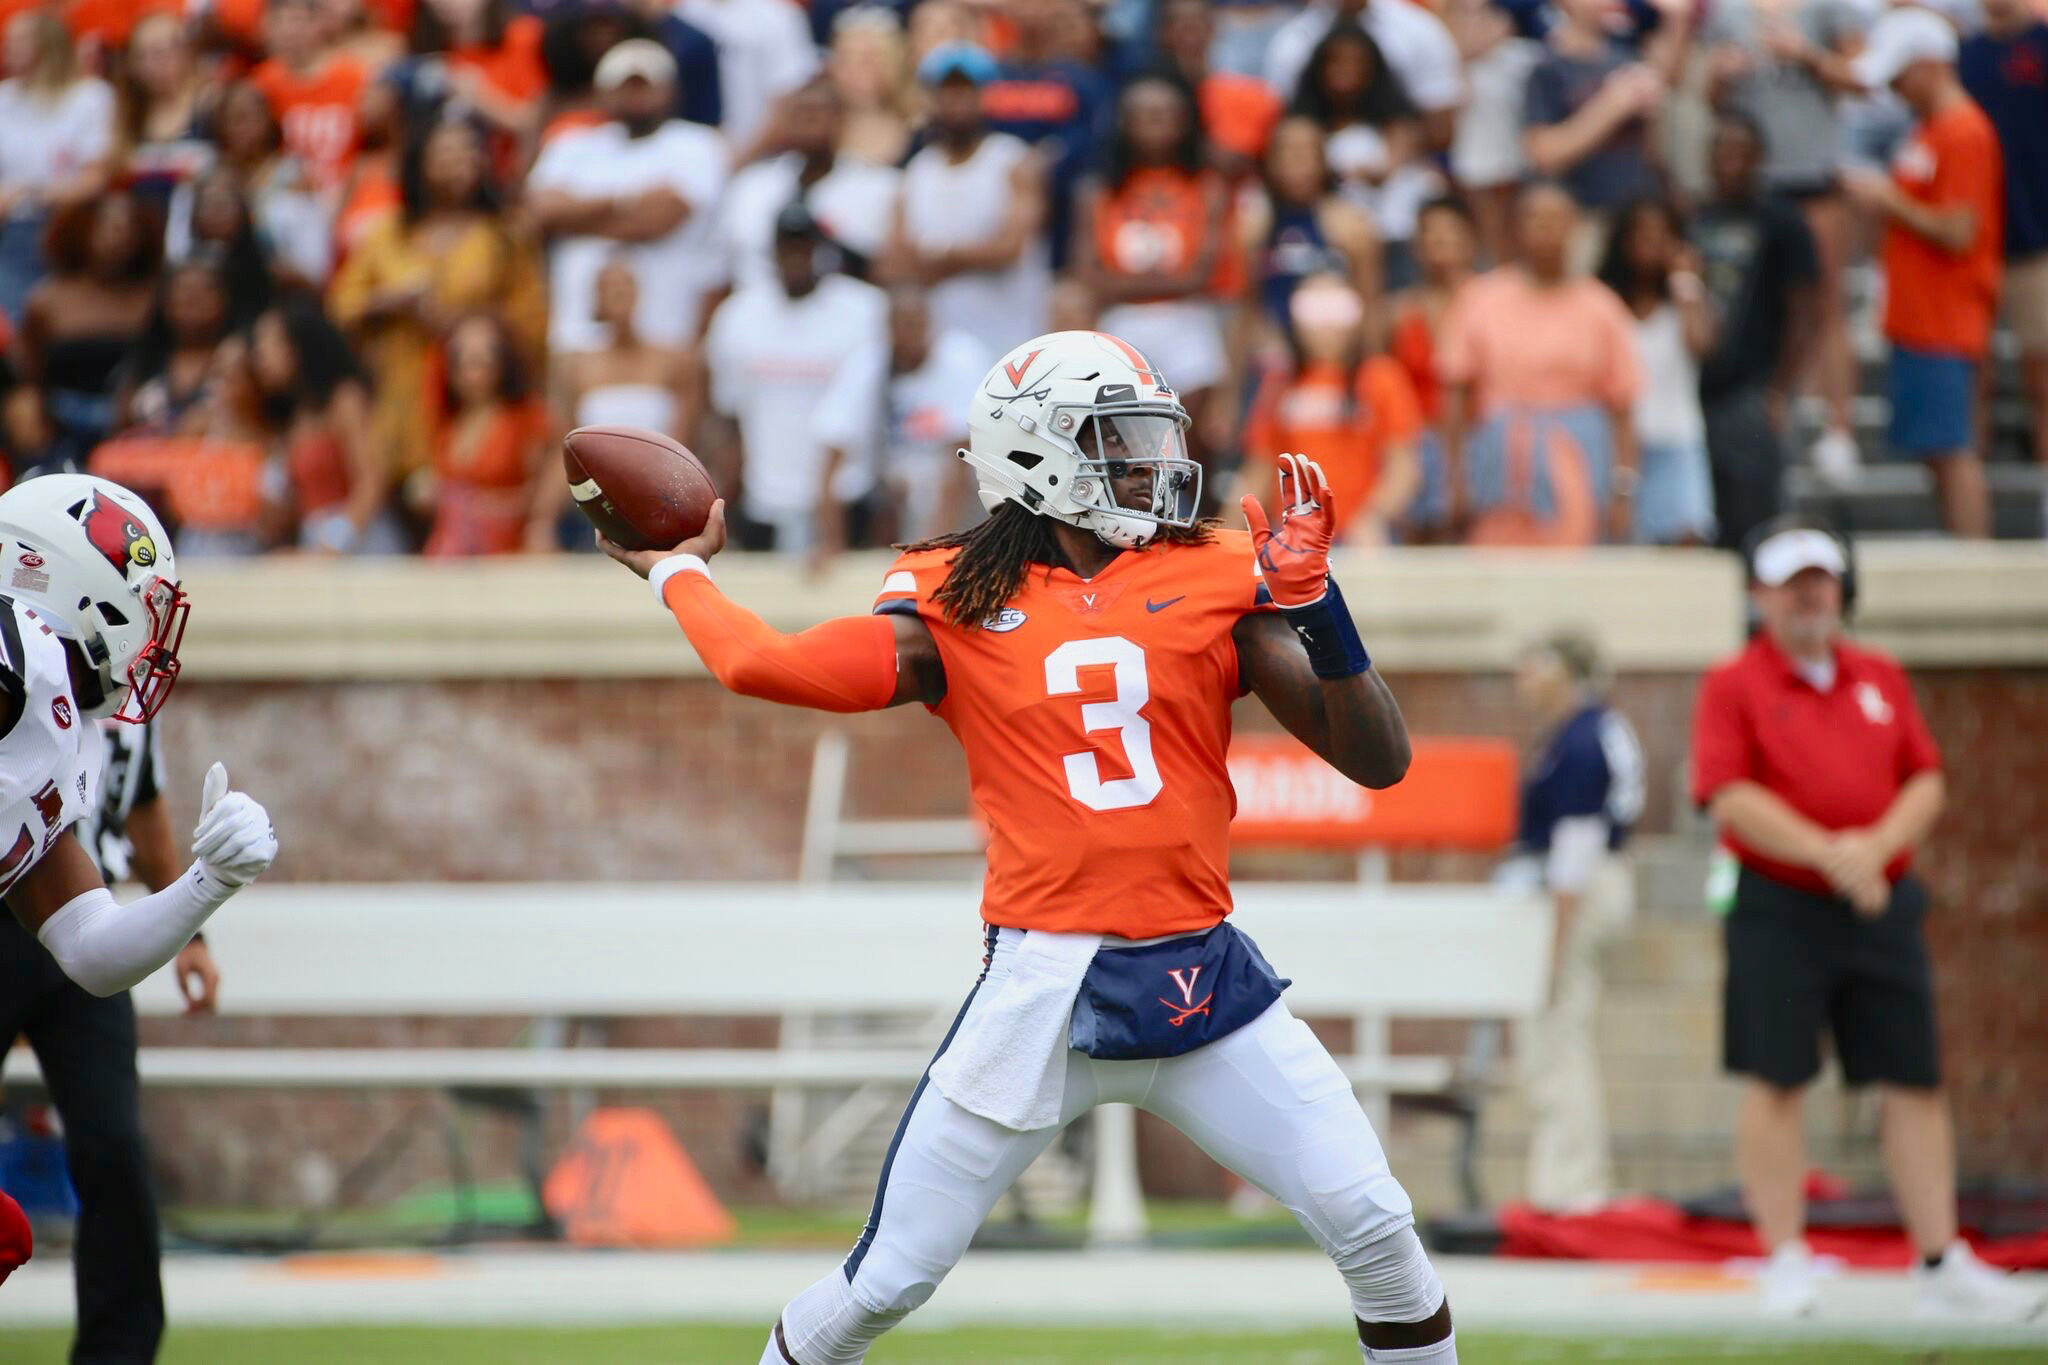 Quarterback Bryce Perkins is in his second year playing for the Cavaliers.